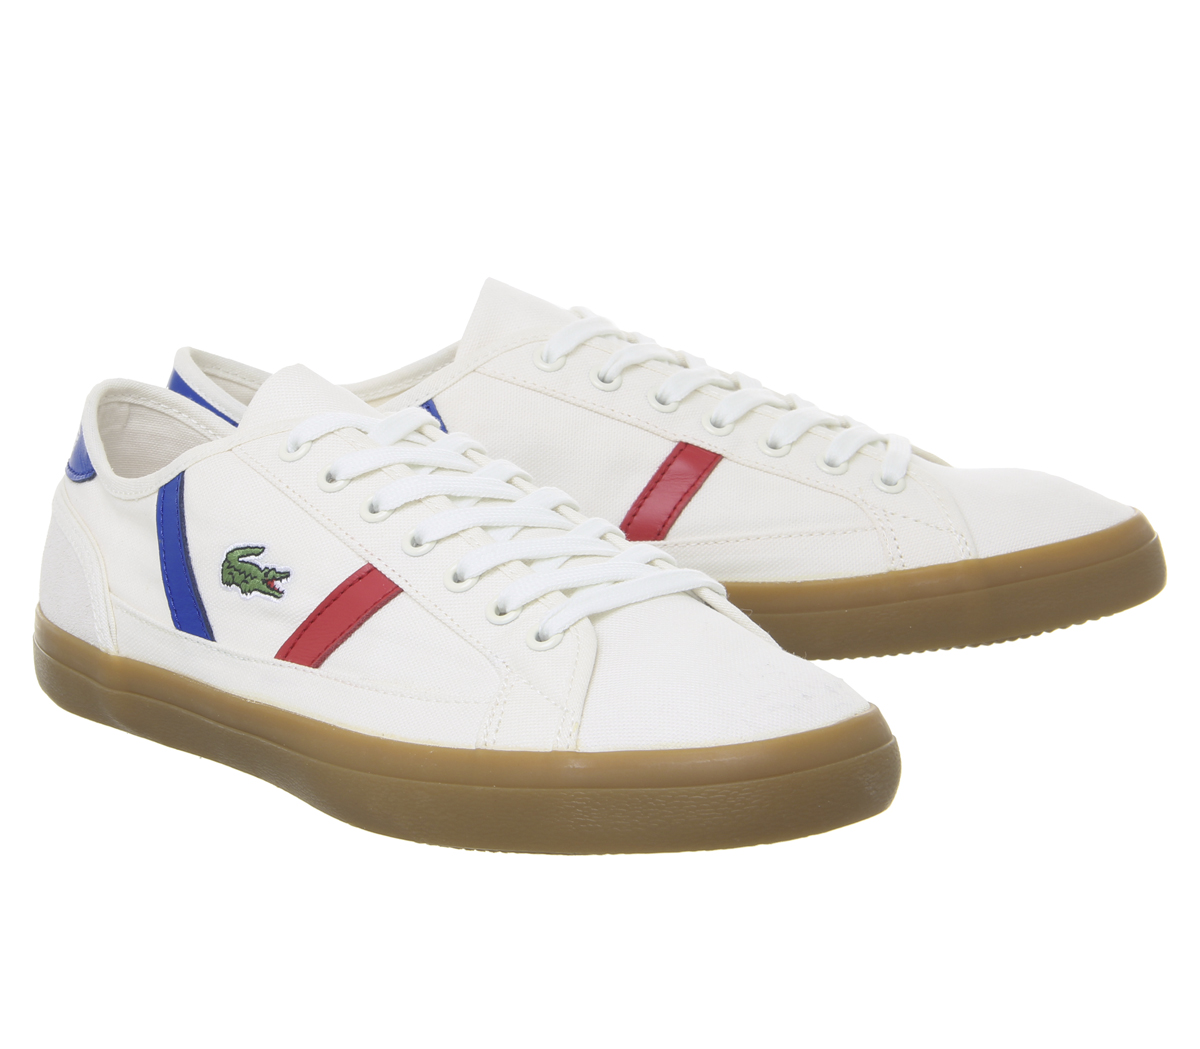 6dcf65e93573 Lacoste-Sideline-Trainers-Off-White-Gum-Trainers-Shoes thumbnail